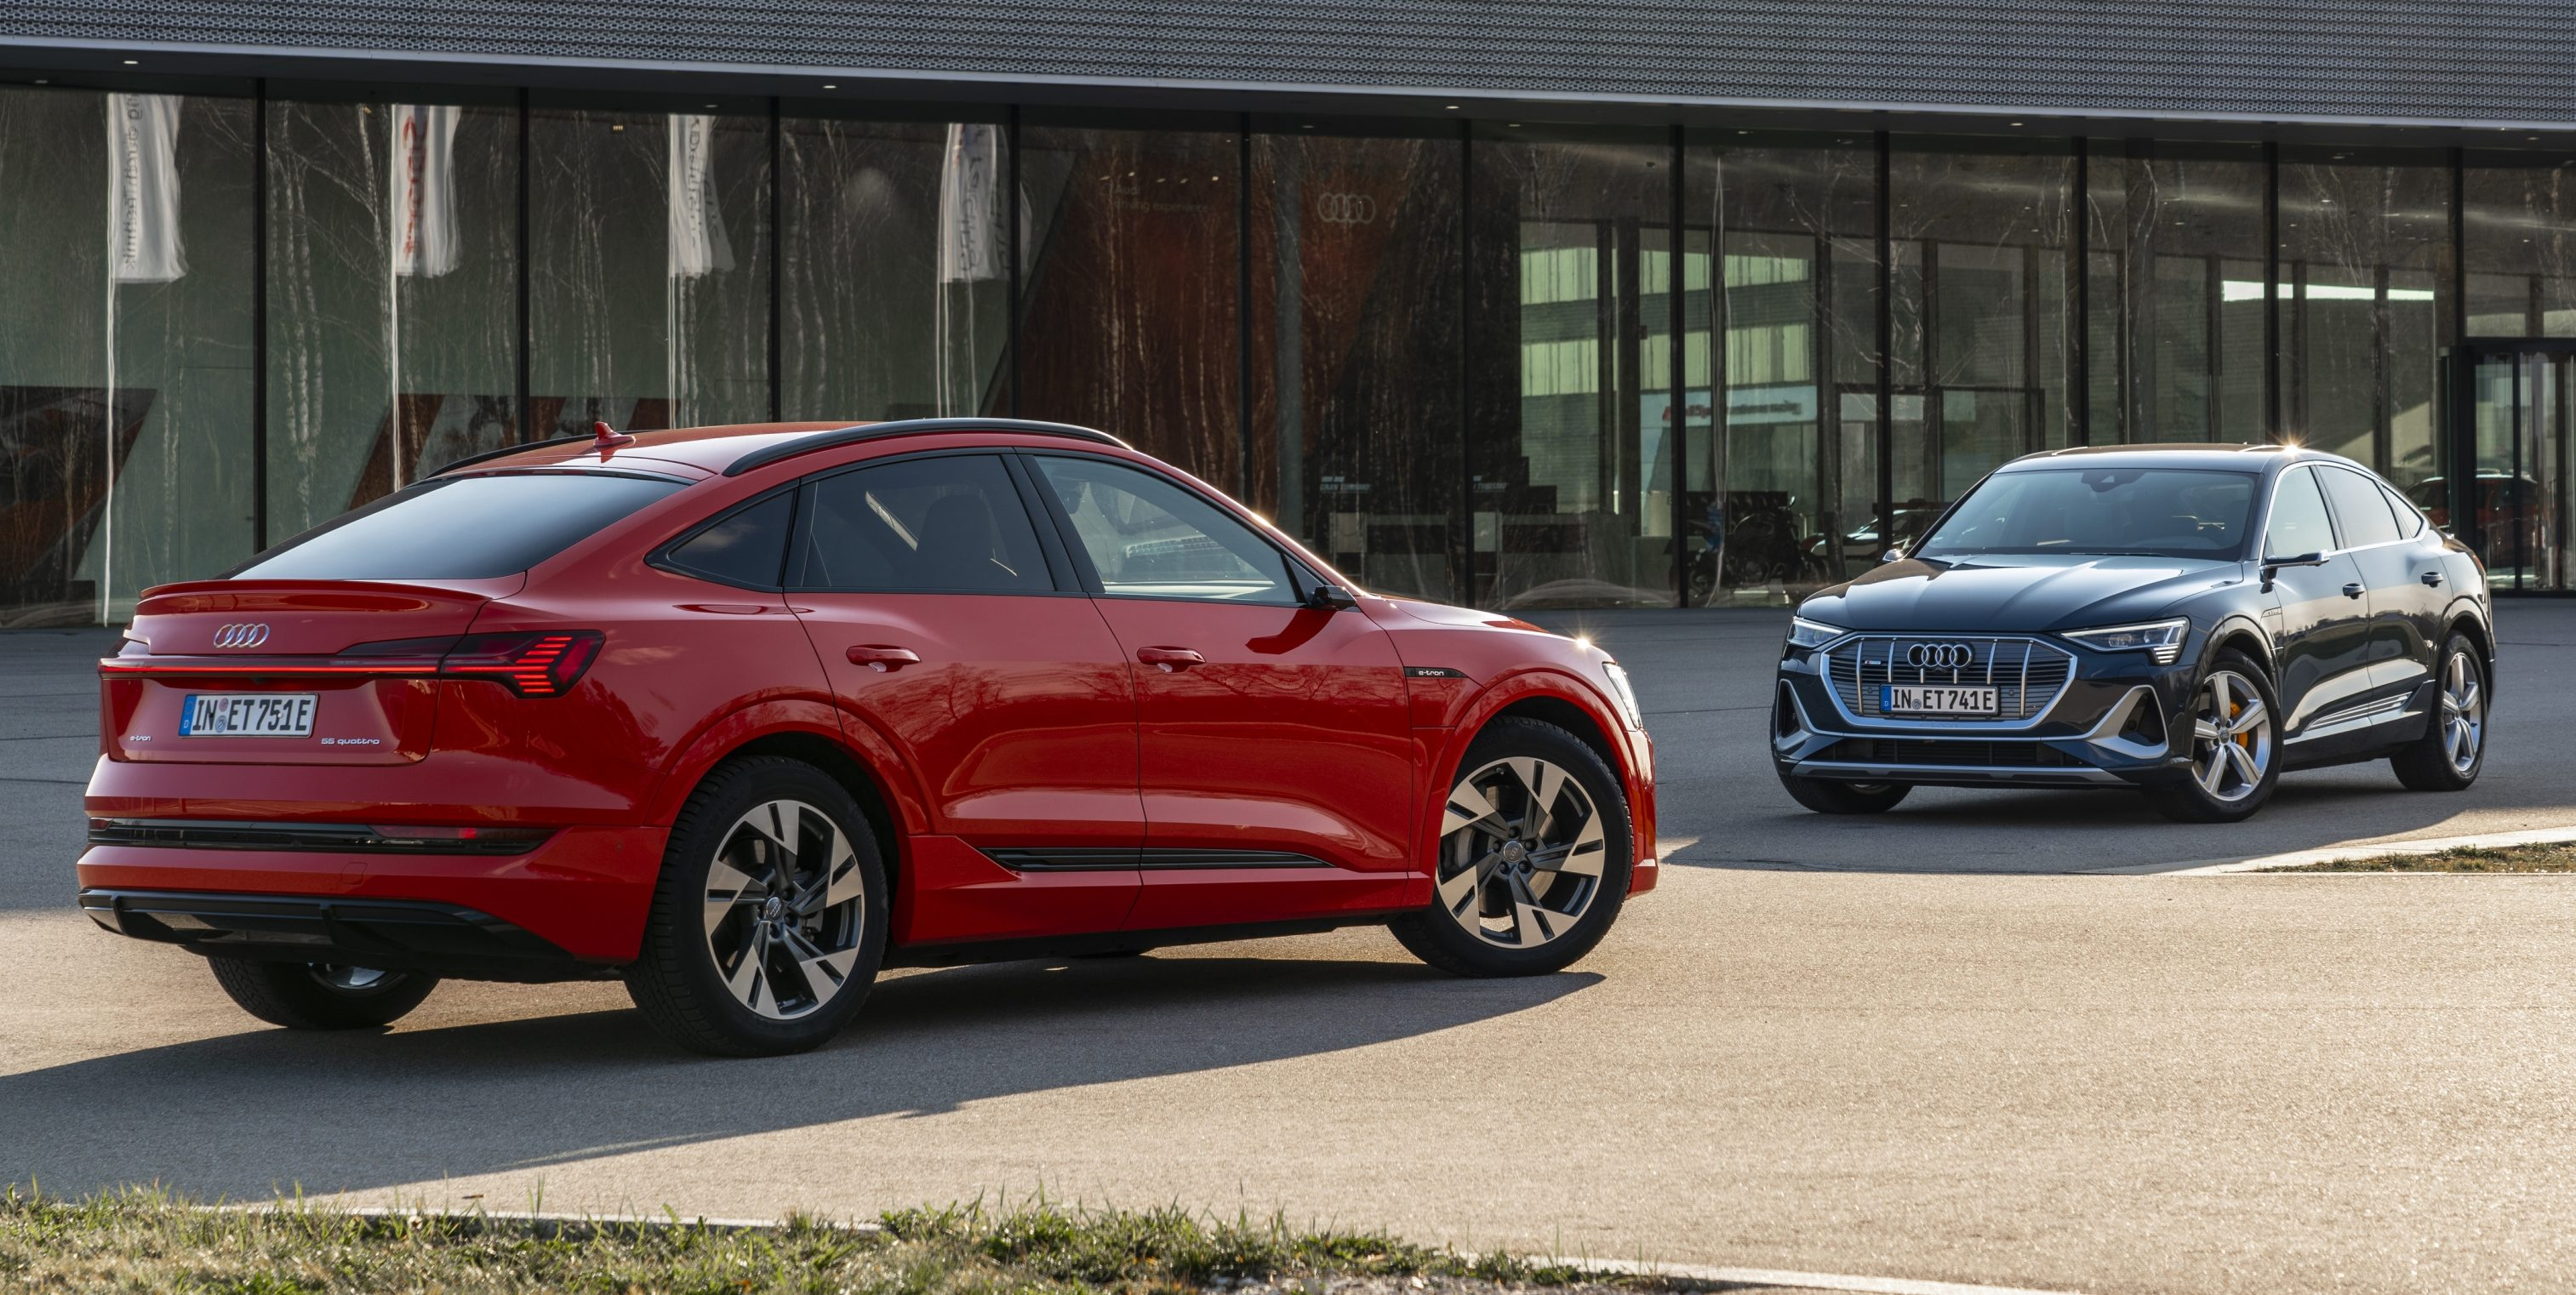 Audi E Tron 2021 Electric Suv Gets 9 000 Price Cut And 18 More Miles Of Range Electrek